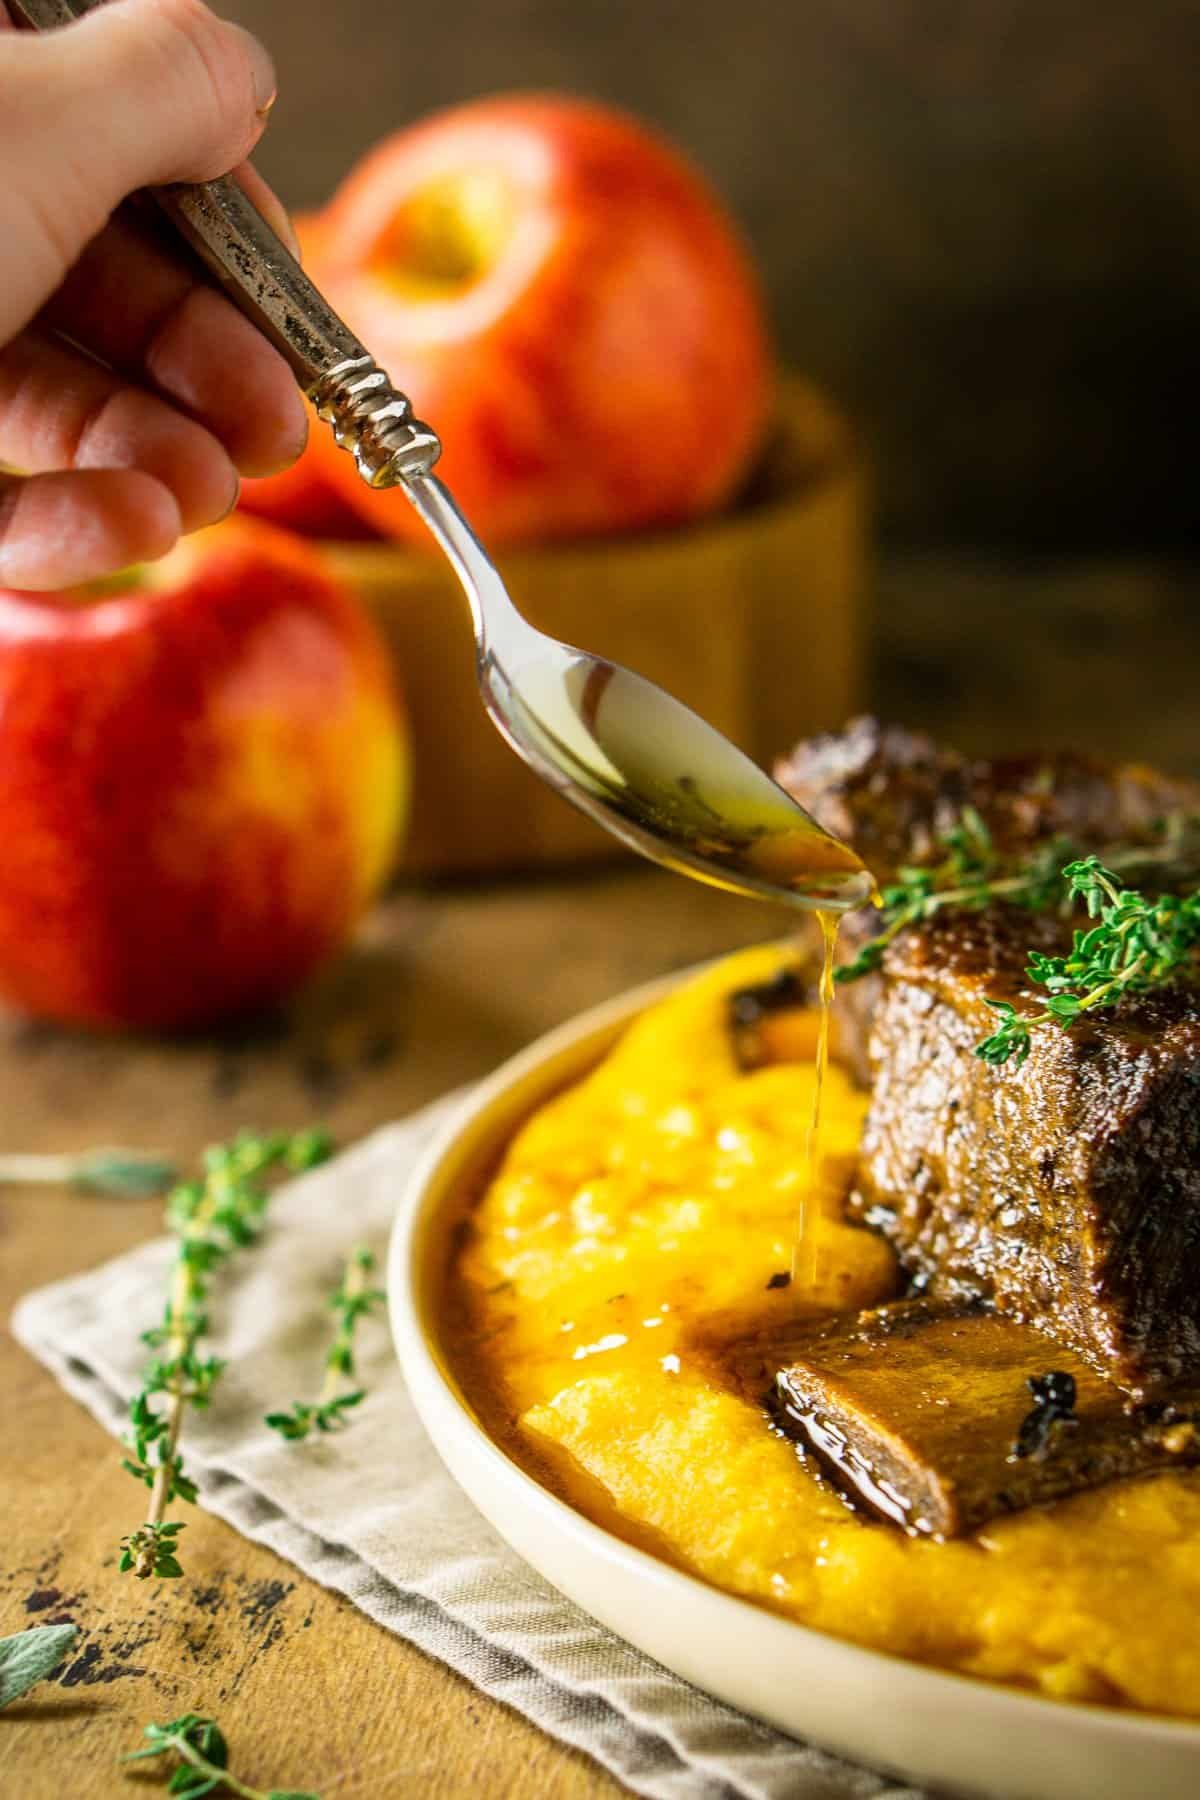 Pouring a spoonful of the sauce onto the polenta and apple cider short ribs.